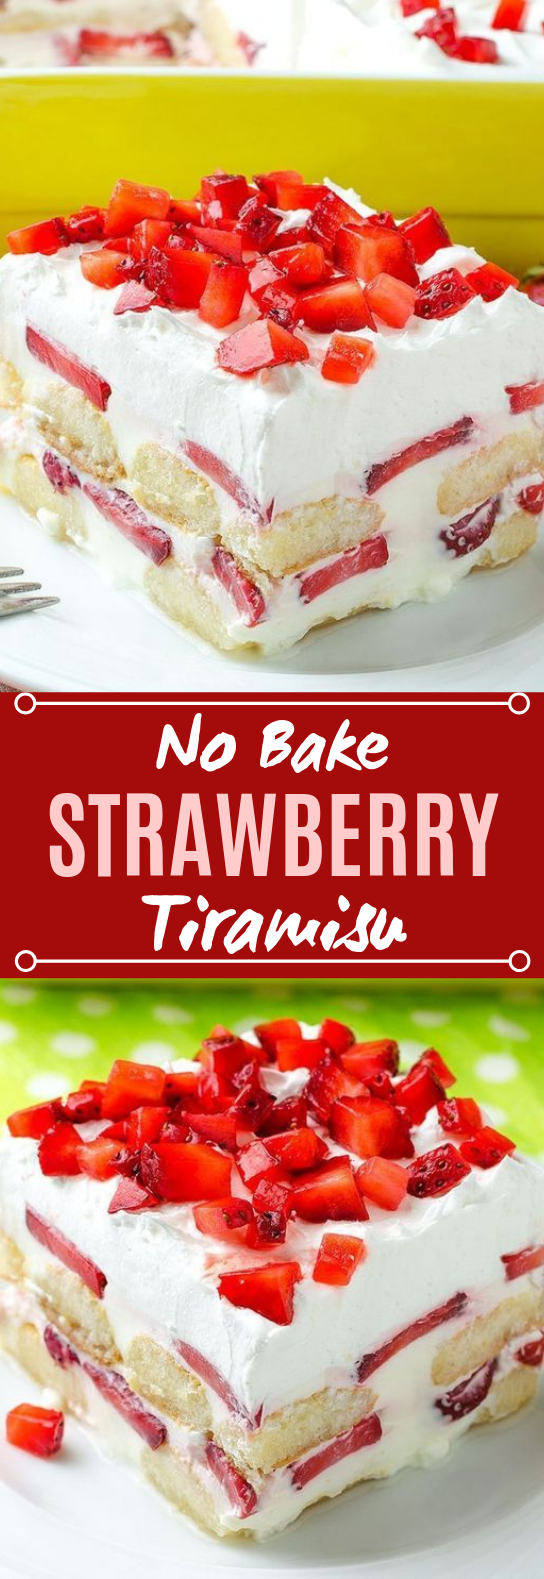 No Bake Strawberry Tiramisu #desserts #cake